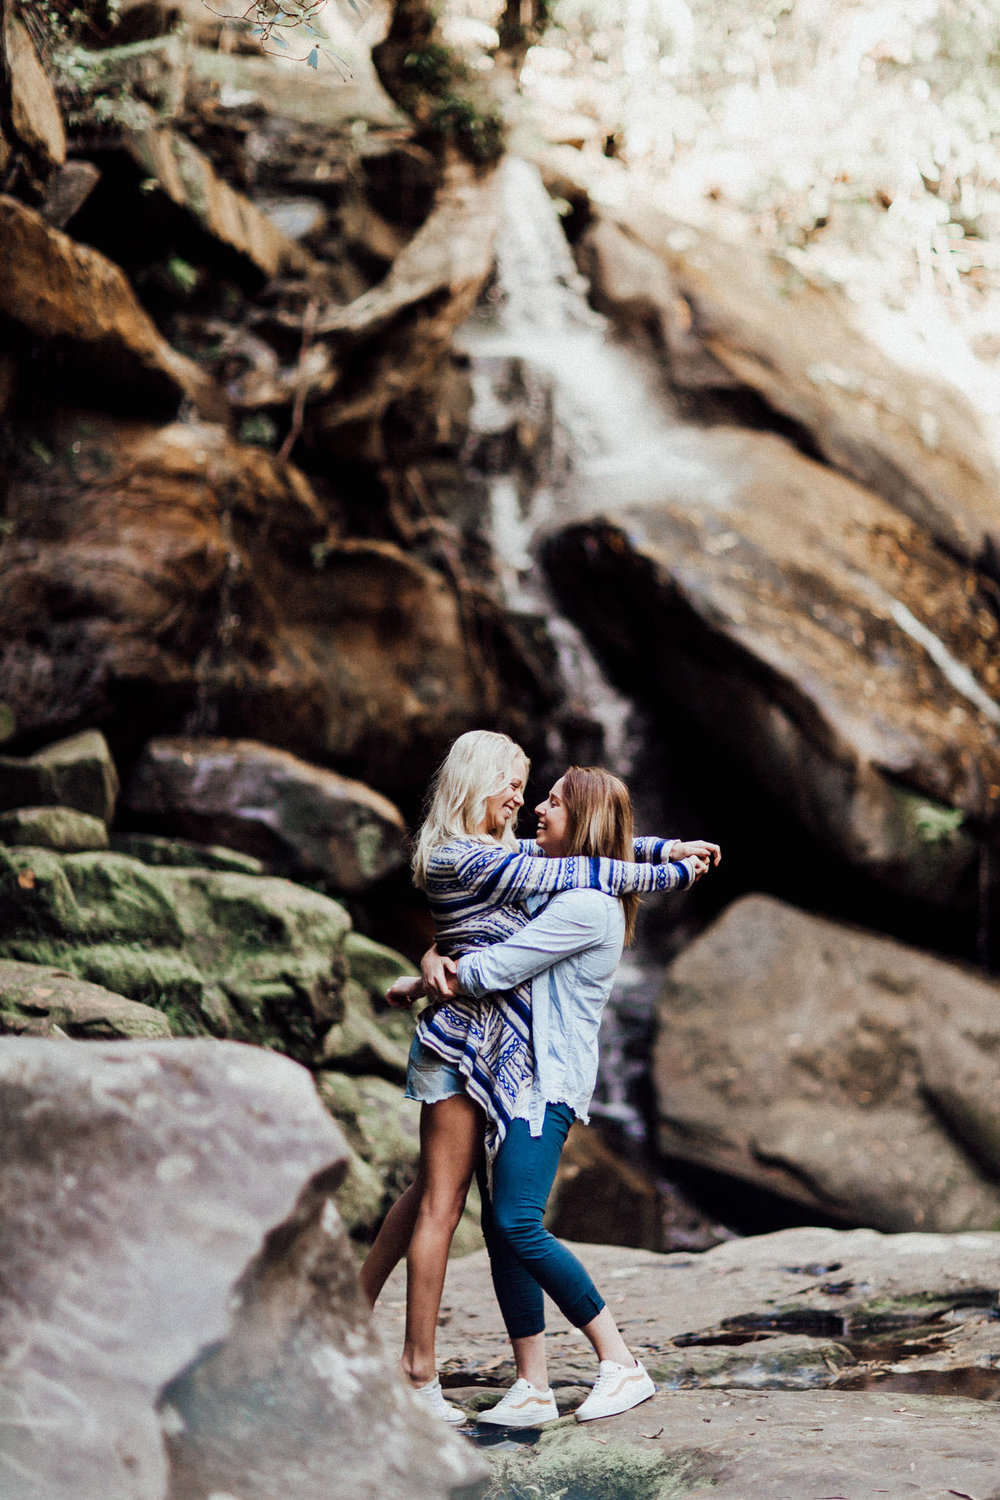 Bri_Gem_Proposal_LaurenAnnePhotography-1020.jpg